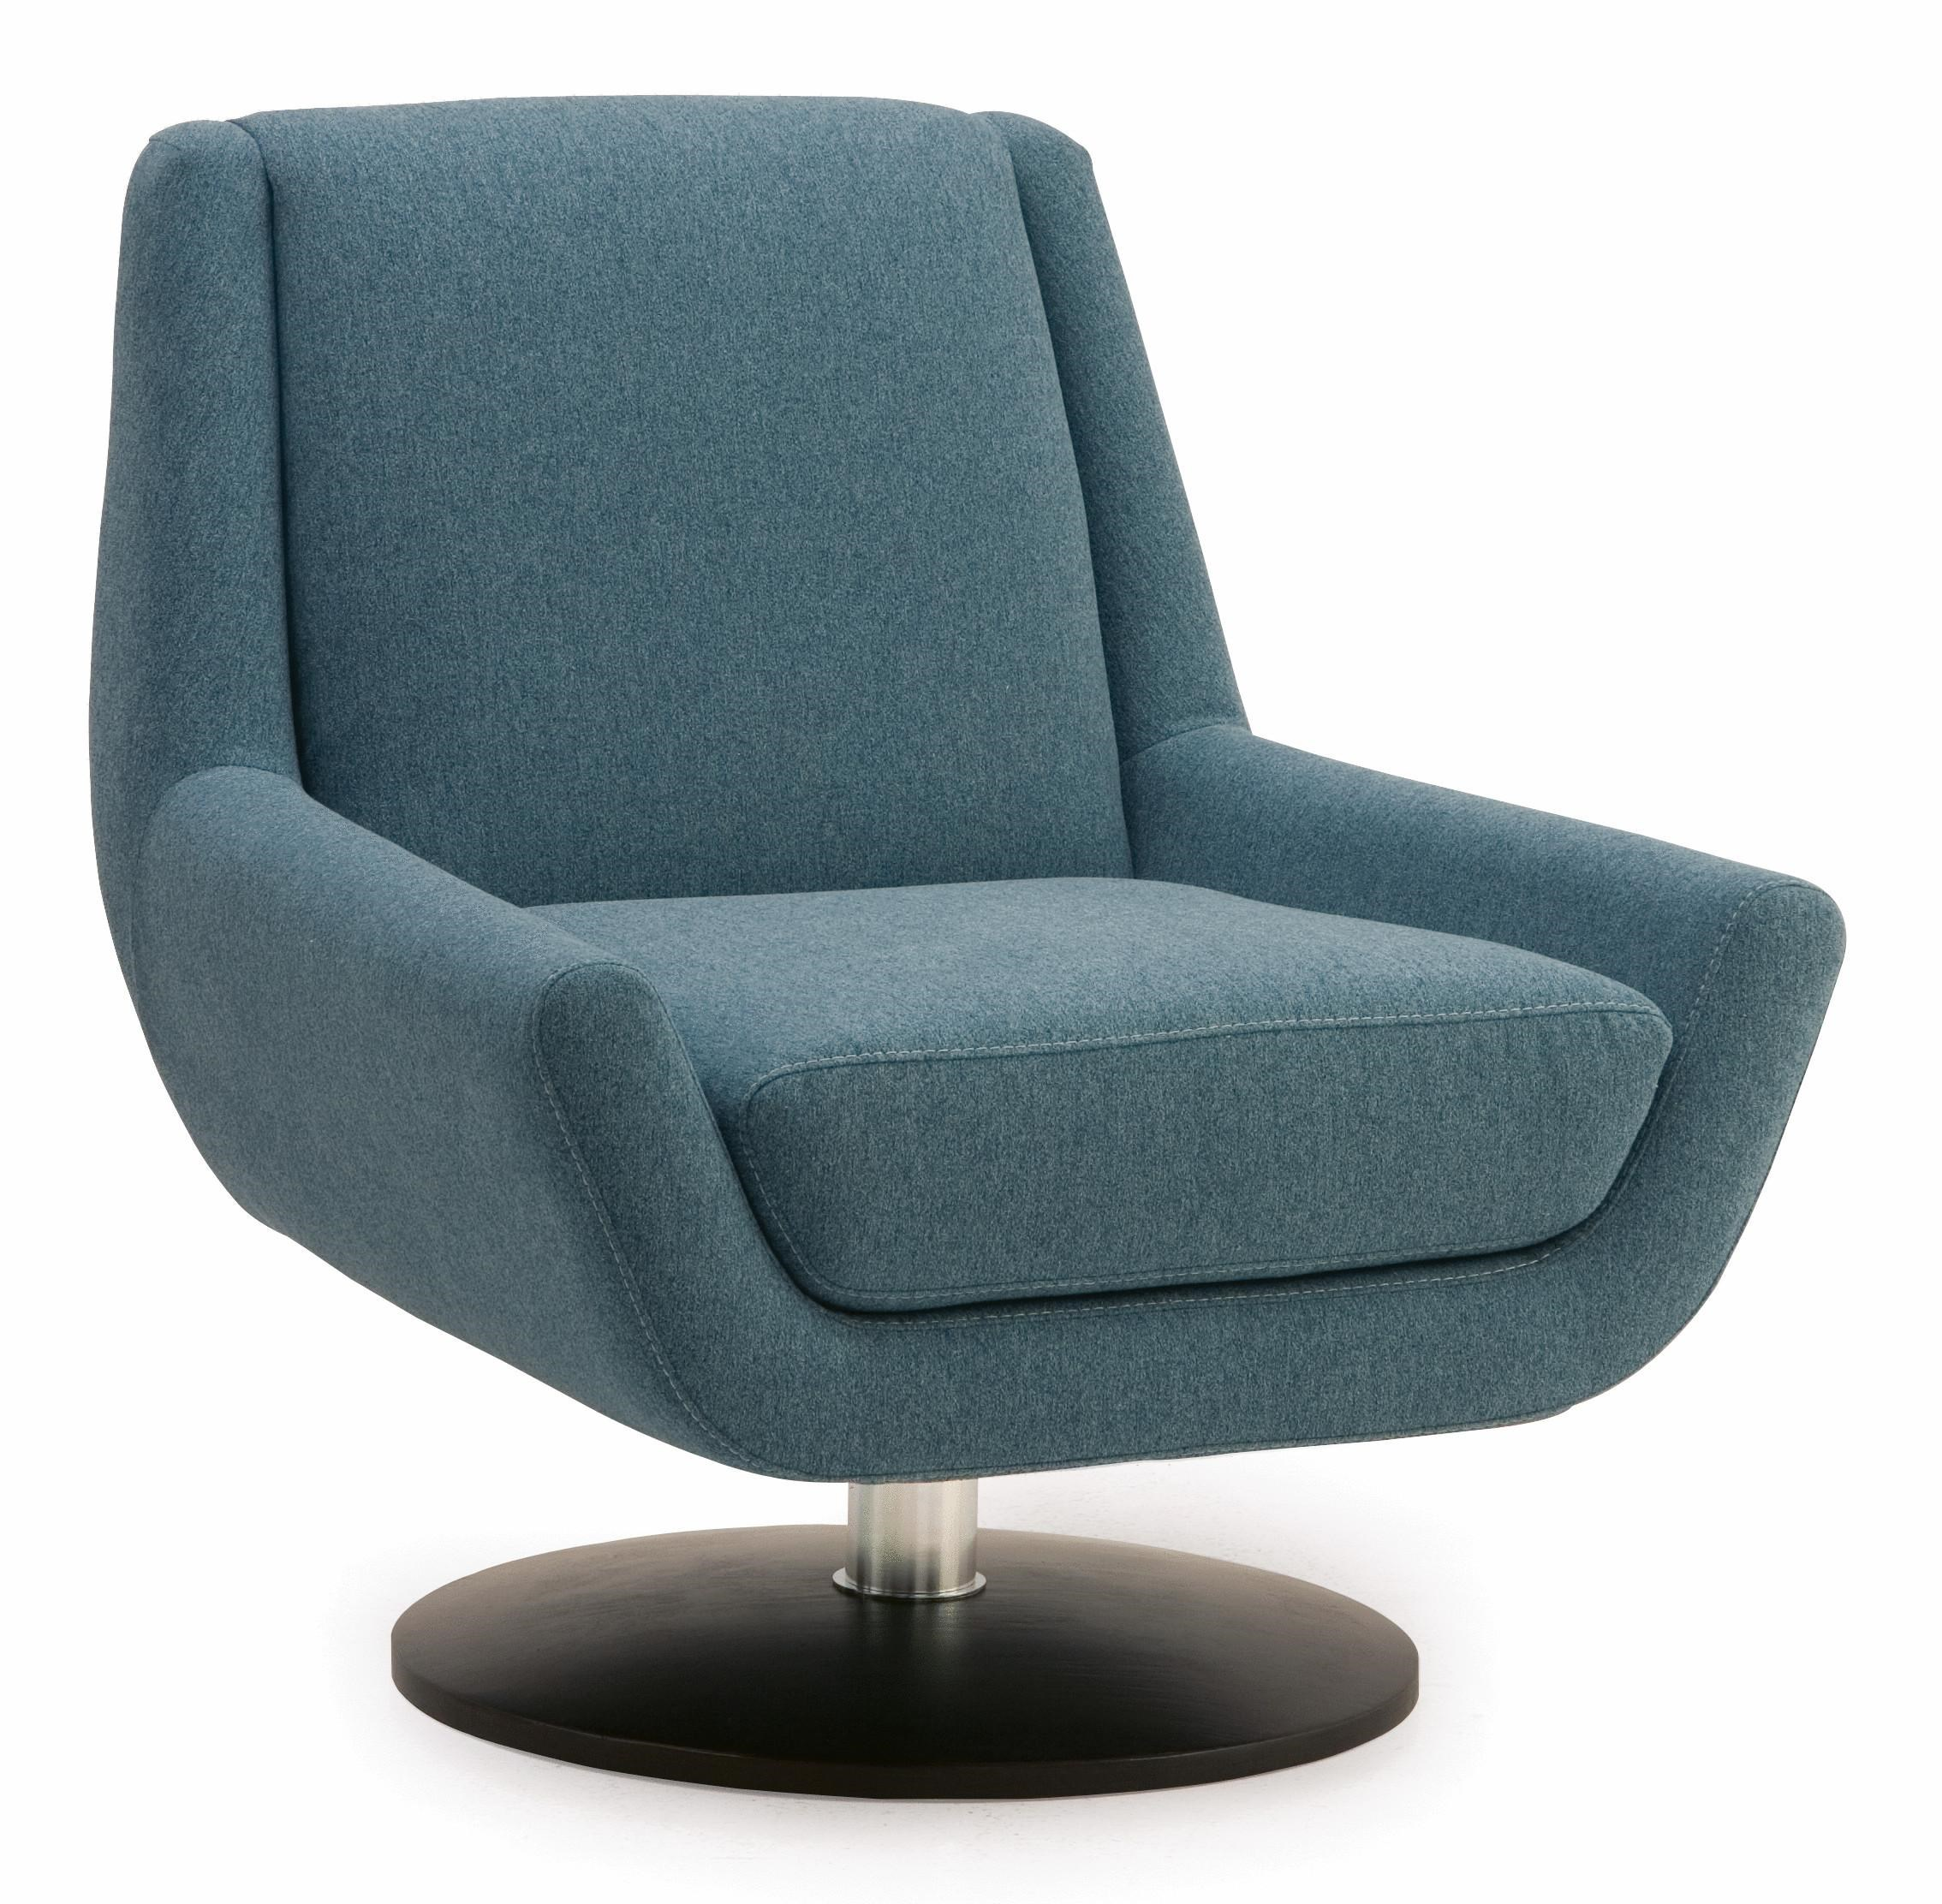 Palliser Plato Contemporary Swivel Chair With Metal Base   Dunk U0026 Bright  Furniture   Upholstered Chair